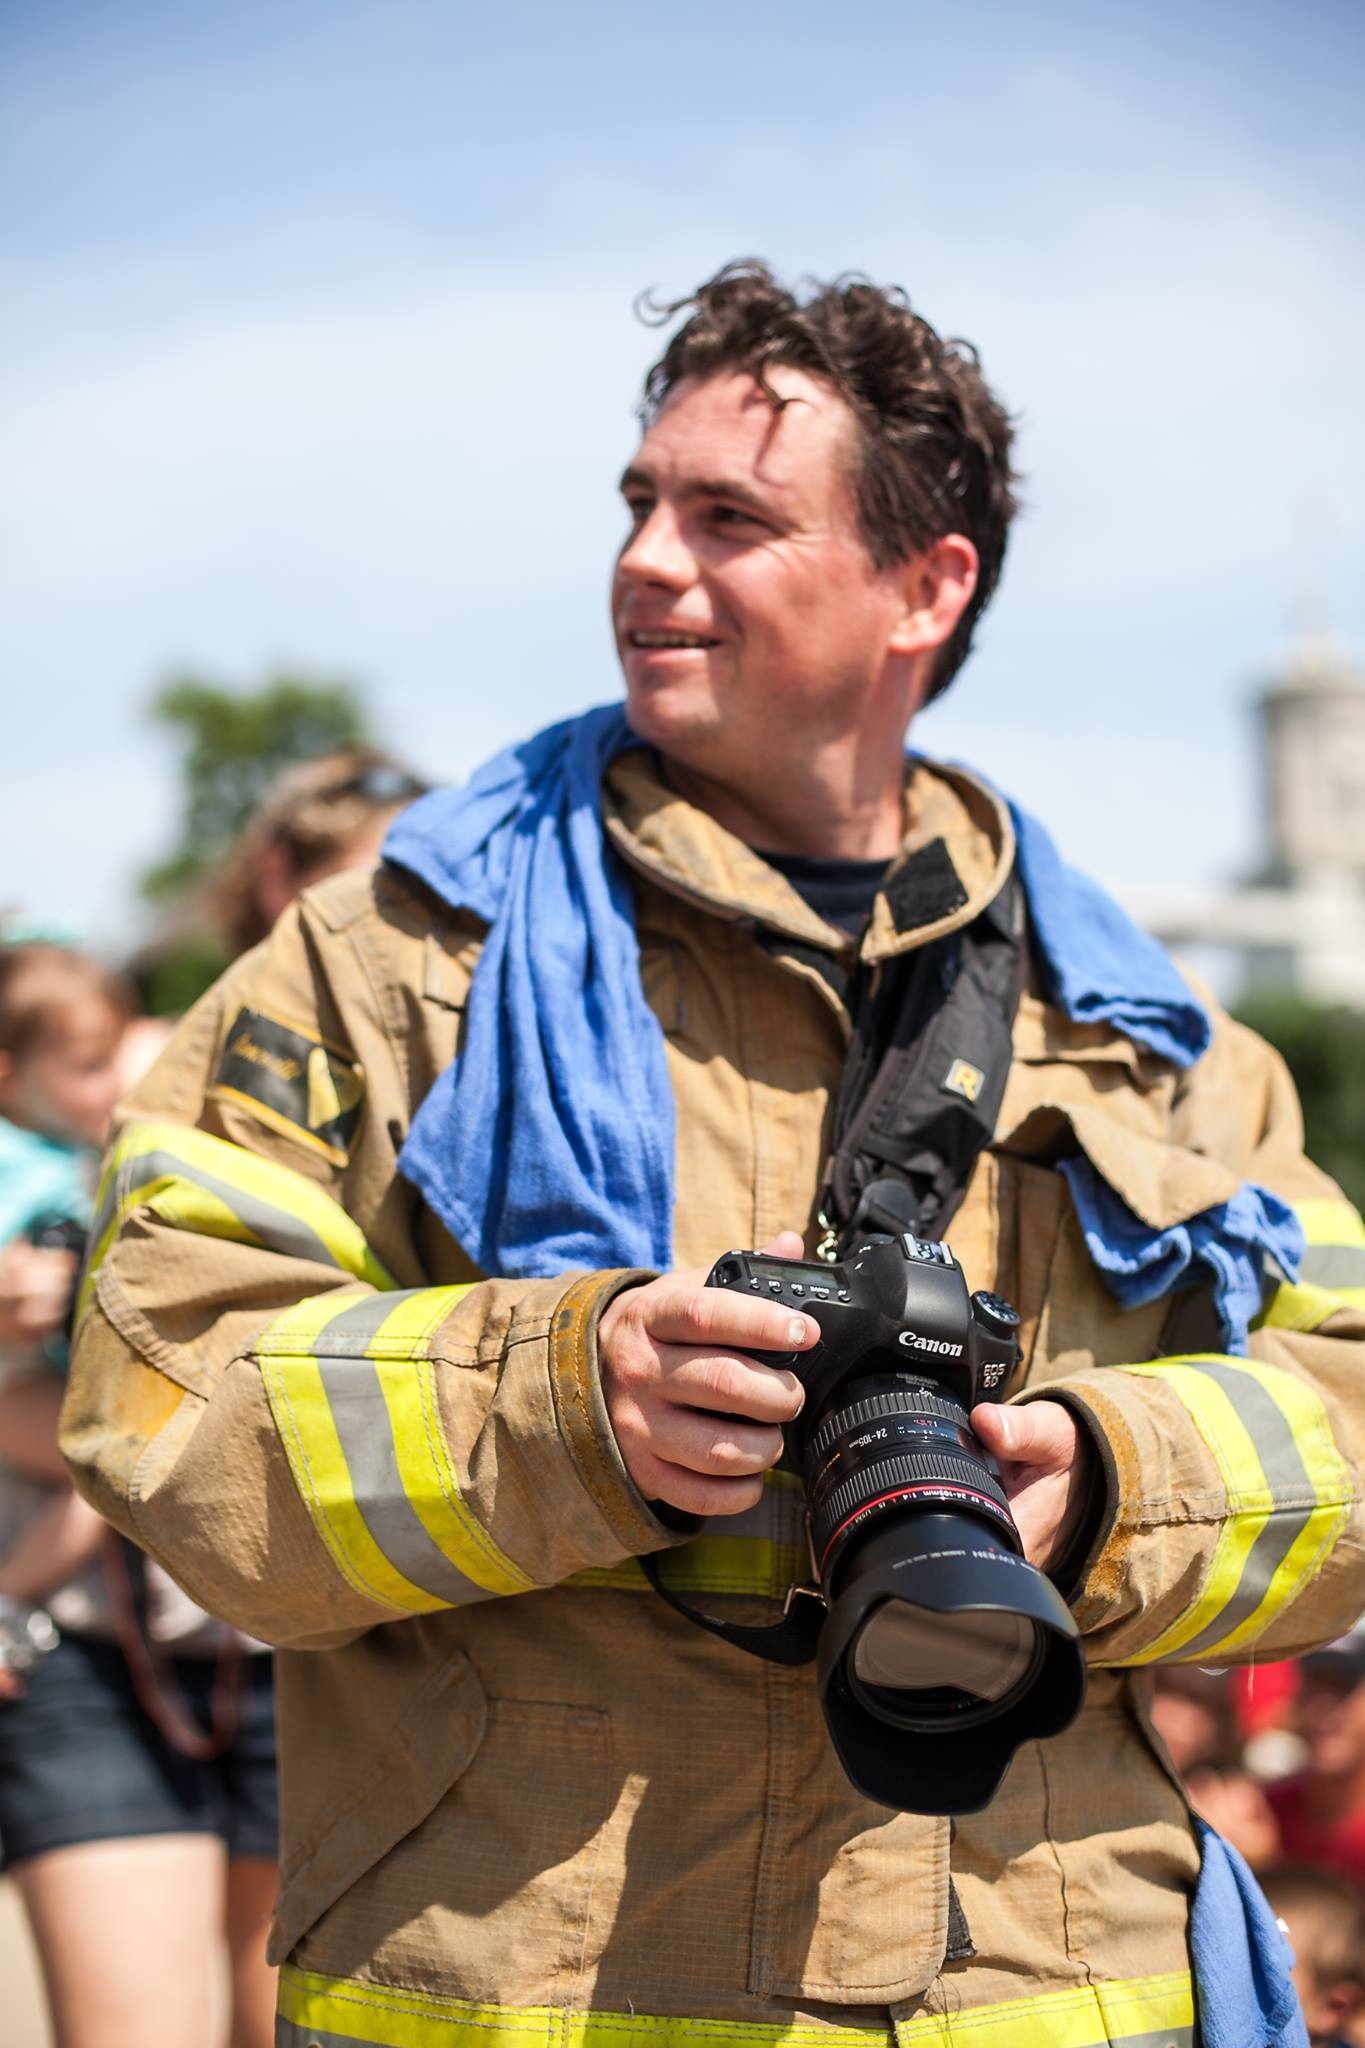 Jeb photographing the 9/11 memorial stair climb.